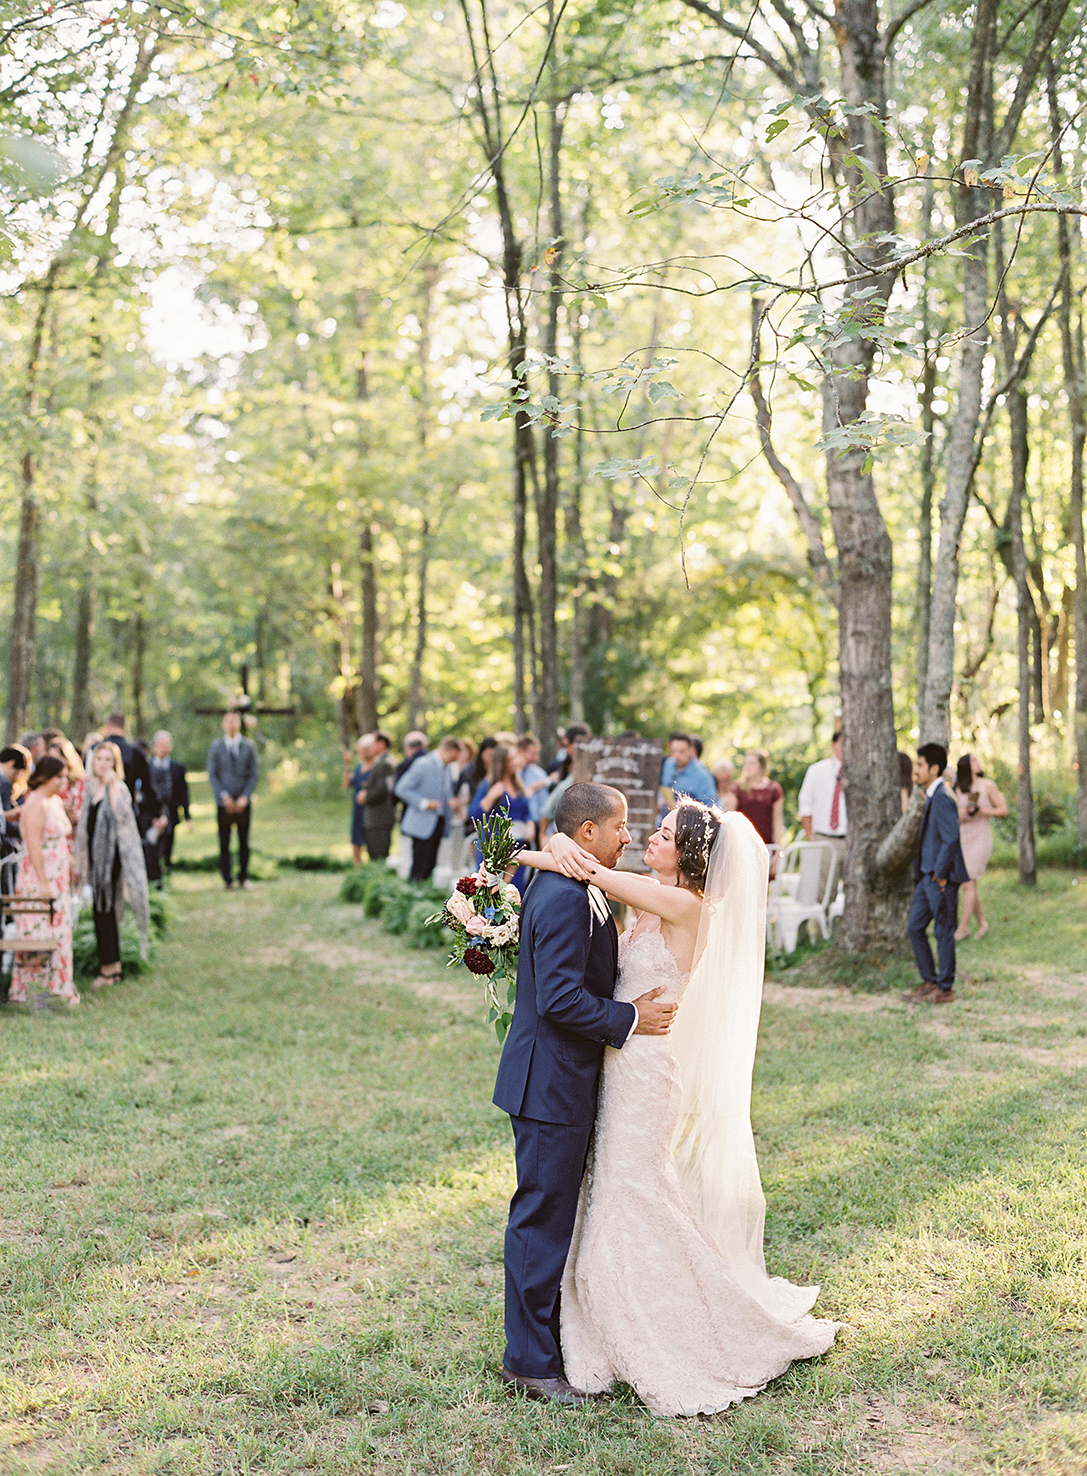 ashley and justin embrace during recessional